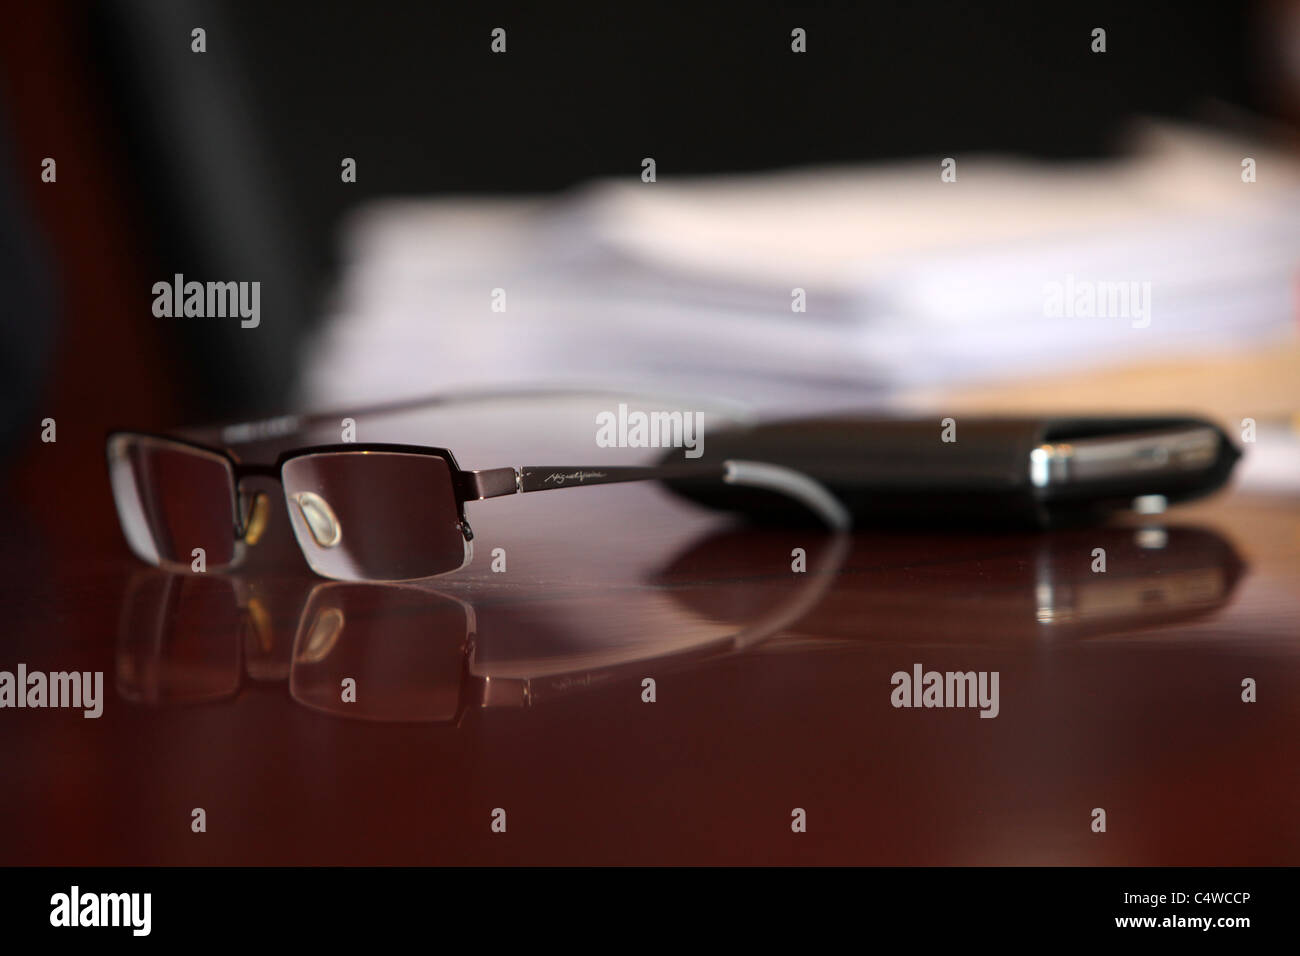 Glasses, mobile phone and paperwork on table. - Stock Image